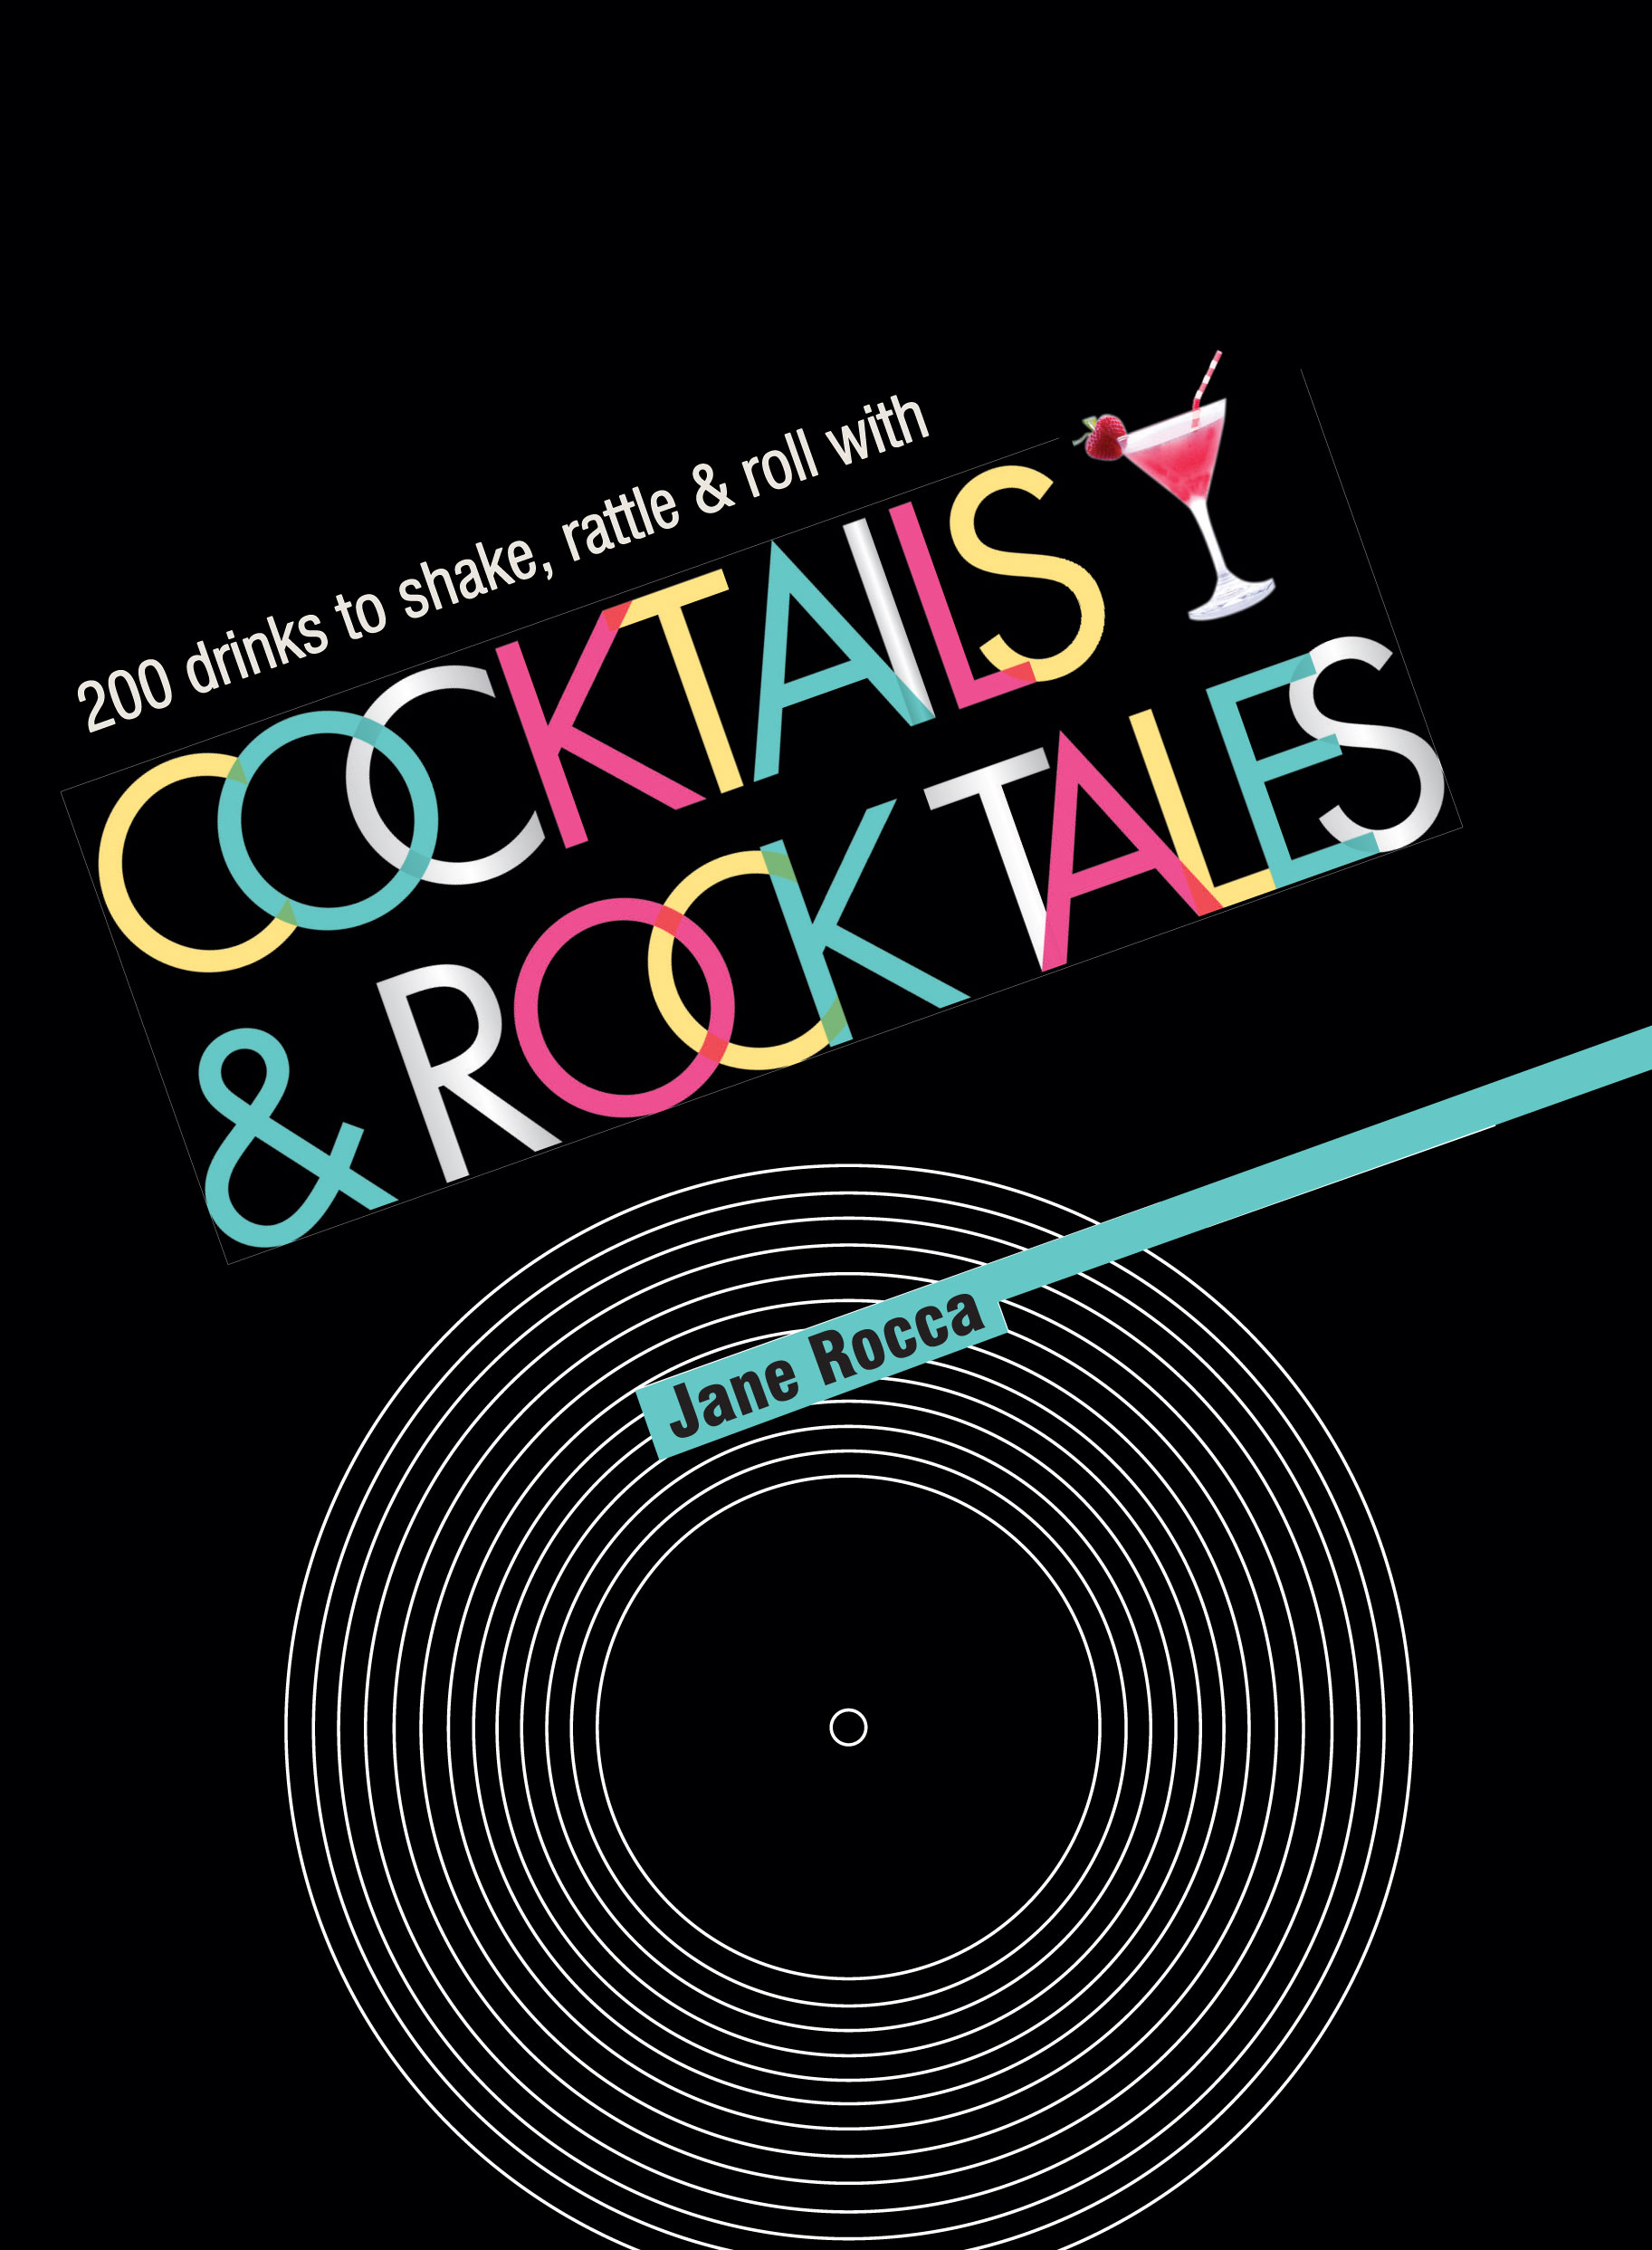 Cocktails and Rock Tales